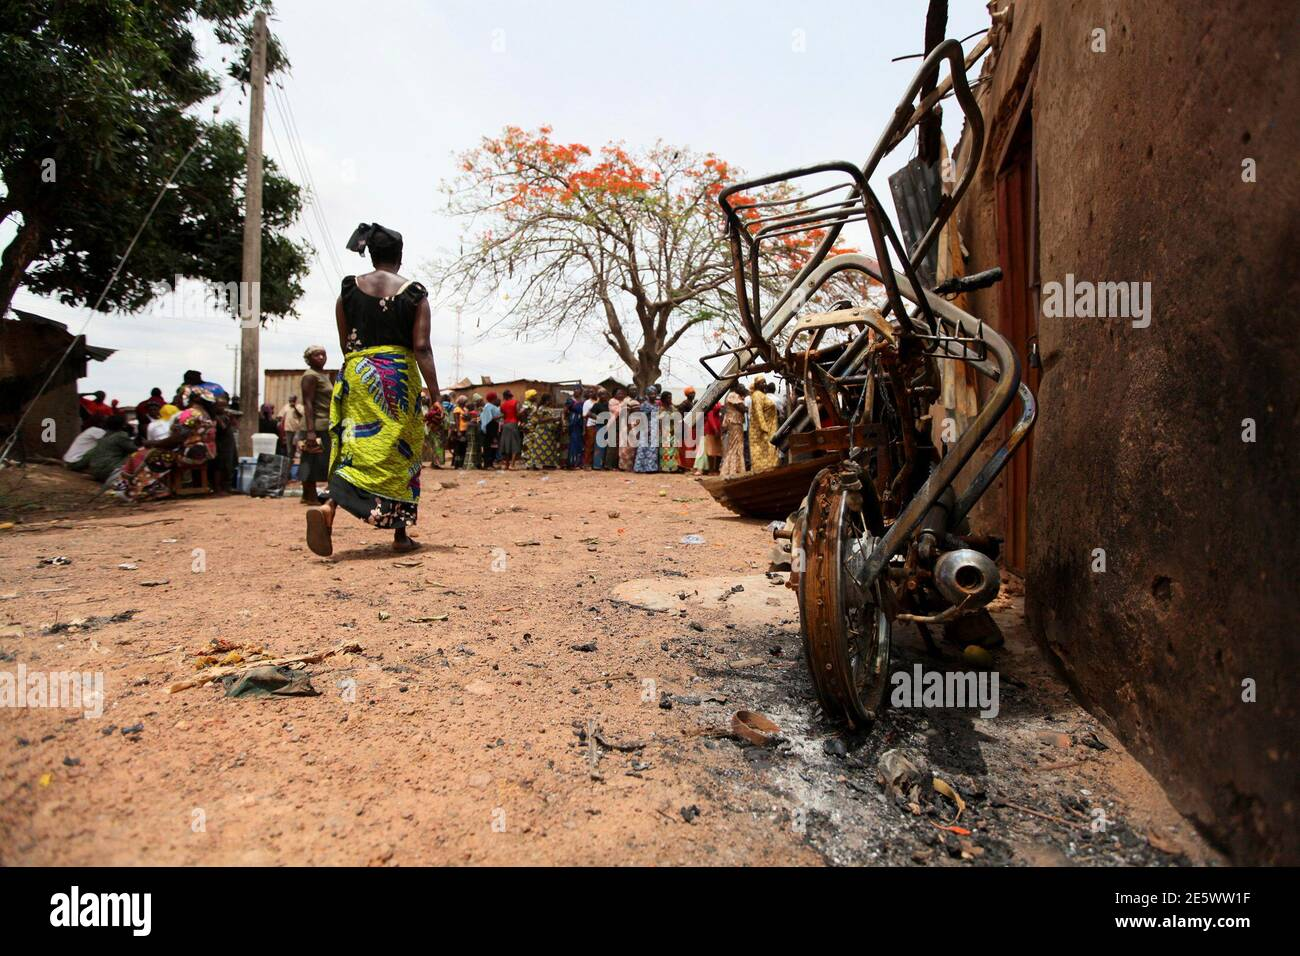 A woman walks past a burnt motocycle to vote at a polling unit in Kachia village, where violence erupted last week, in Nigeria's northern state of  Kaduna April 28, 2011. Voters trickled out to polling stations on Thursday in two states in northern Nigeria where rioting killed hundreds last week, under the watchful eye of policemen on horseback and soldiers manning barricades. REUTERS/Afolabi Sotunde (NIGERIA - Tags: POLITICS ELECTIONS CIVIL UNREST) Banque D'Images